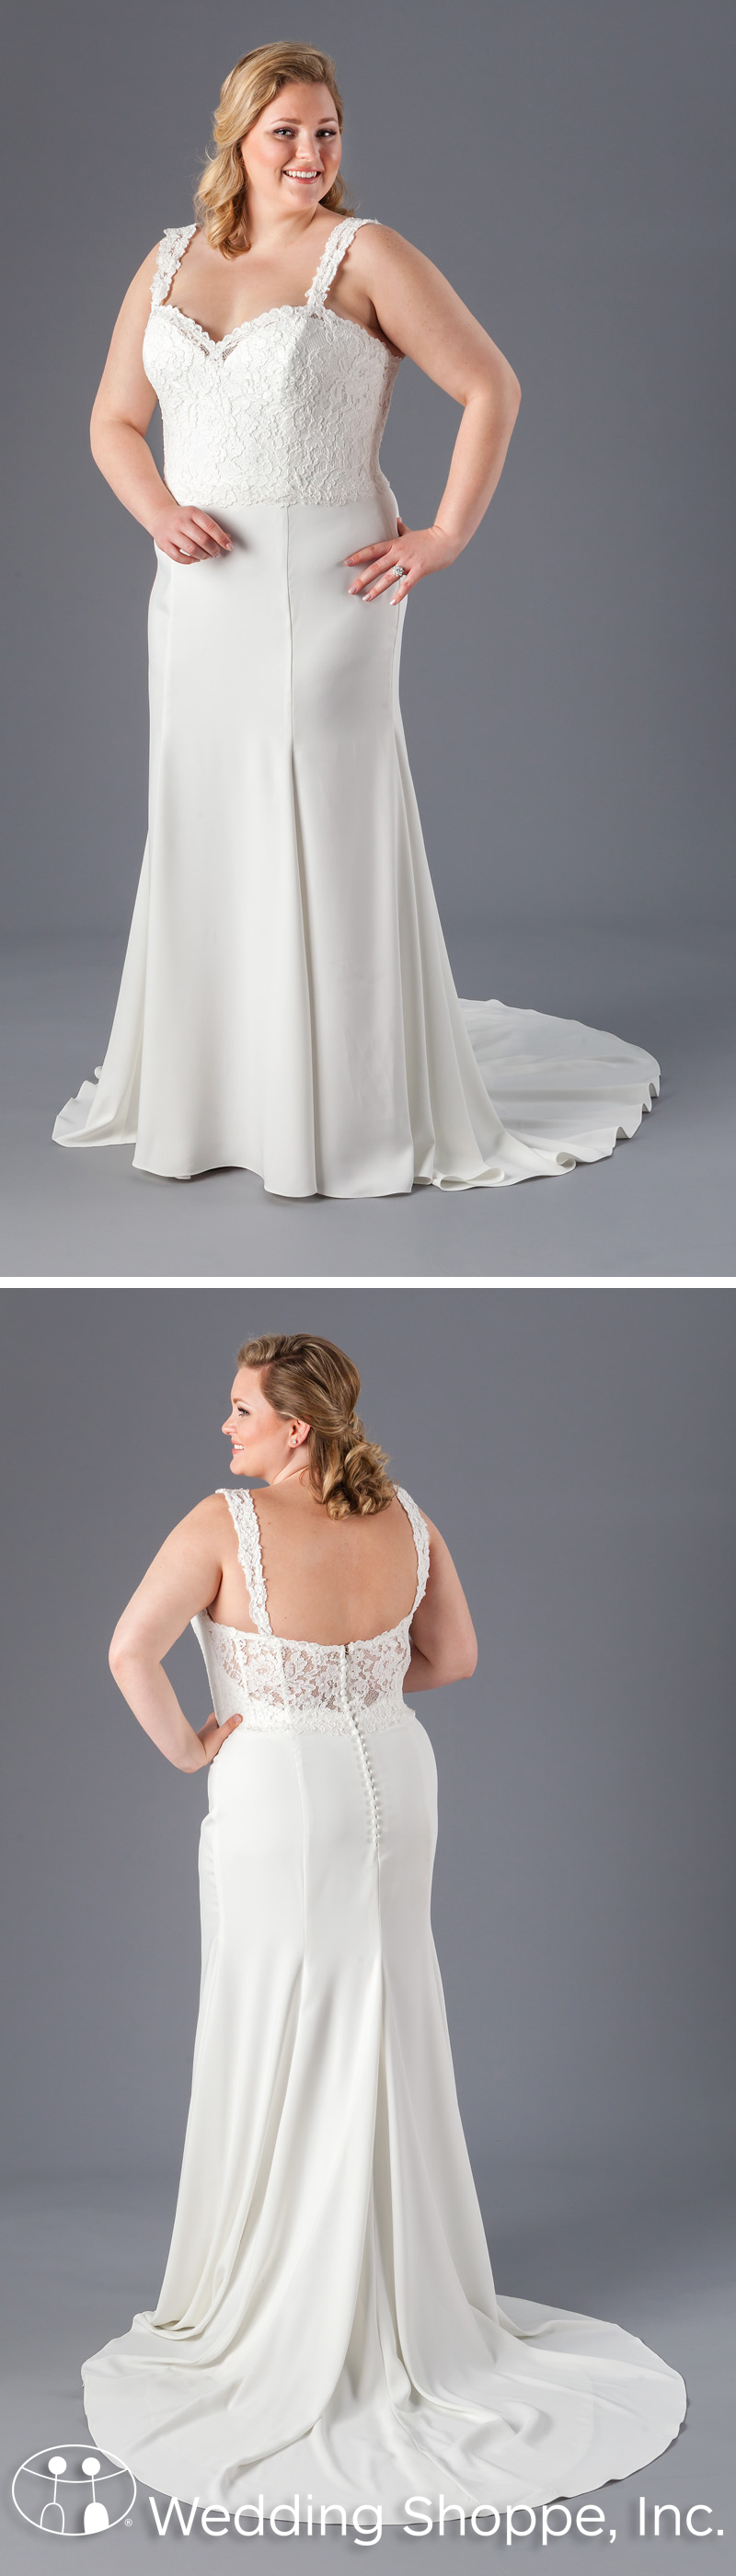 This fitandflare plus size bridal gown features a detailed lace